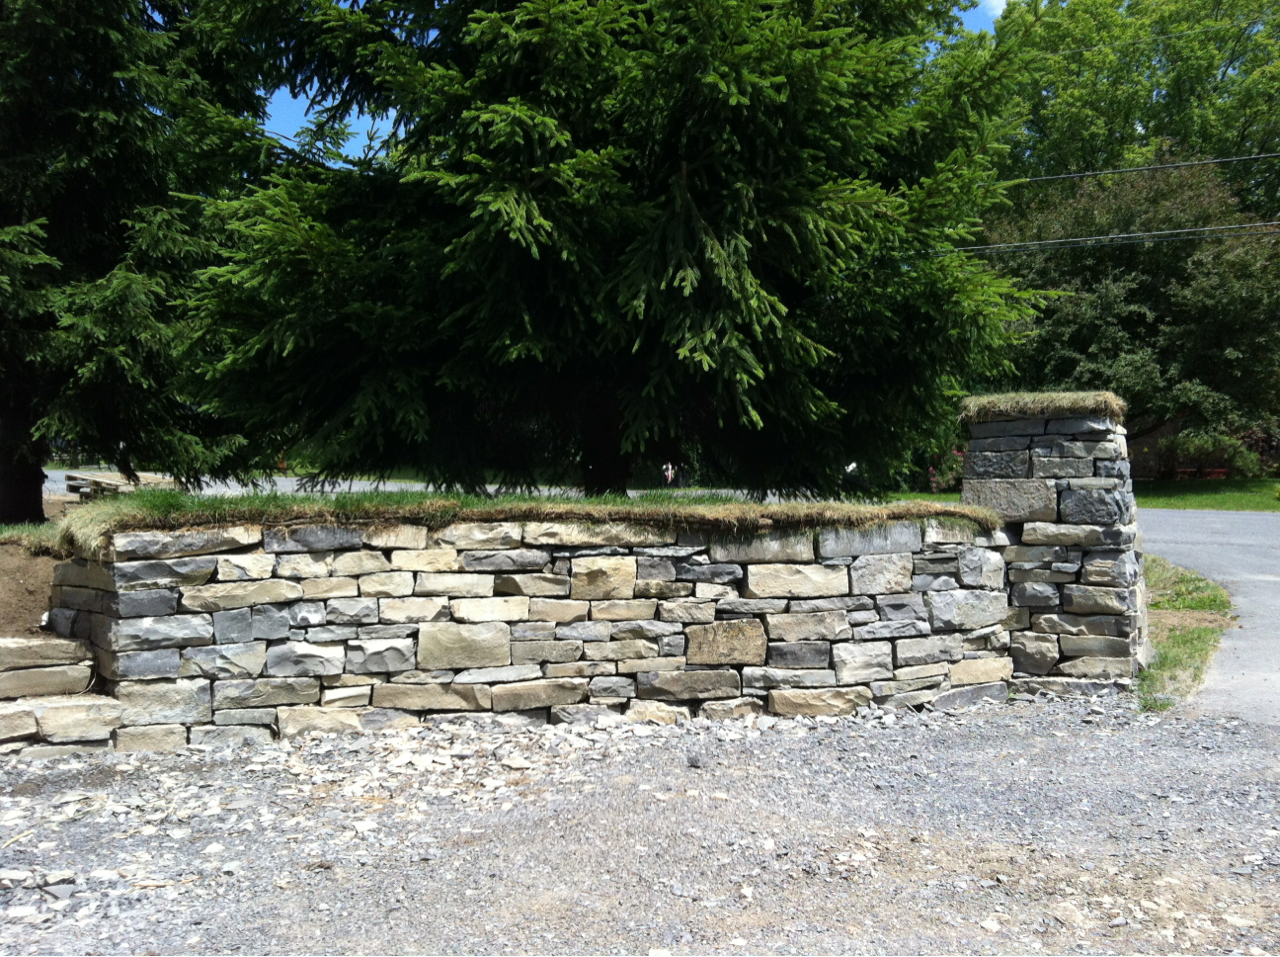 This dry stone retaining wall was constructed in reclaimed Kingston Limestone. The stone had previously been used in a mortared wall on the shores of Lake Ontario that was slated for demolition.     The wall ties in to a 4' gatepost that is mirrored with a matching gatepost on the opposite side of the driveway.    Both the wall and posts is capped with a layer of turf in the place of traditional coping stones.    Edgewater Stonemasons is a member of Dry Stone Walling Across Canada, and designs and builds dry stone projects in a wide range of stone types.